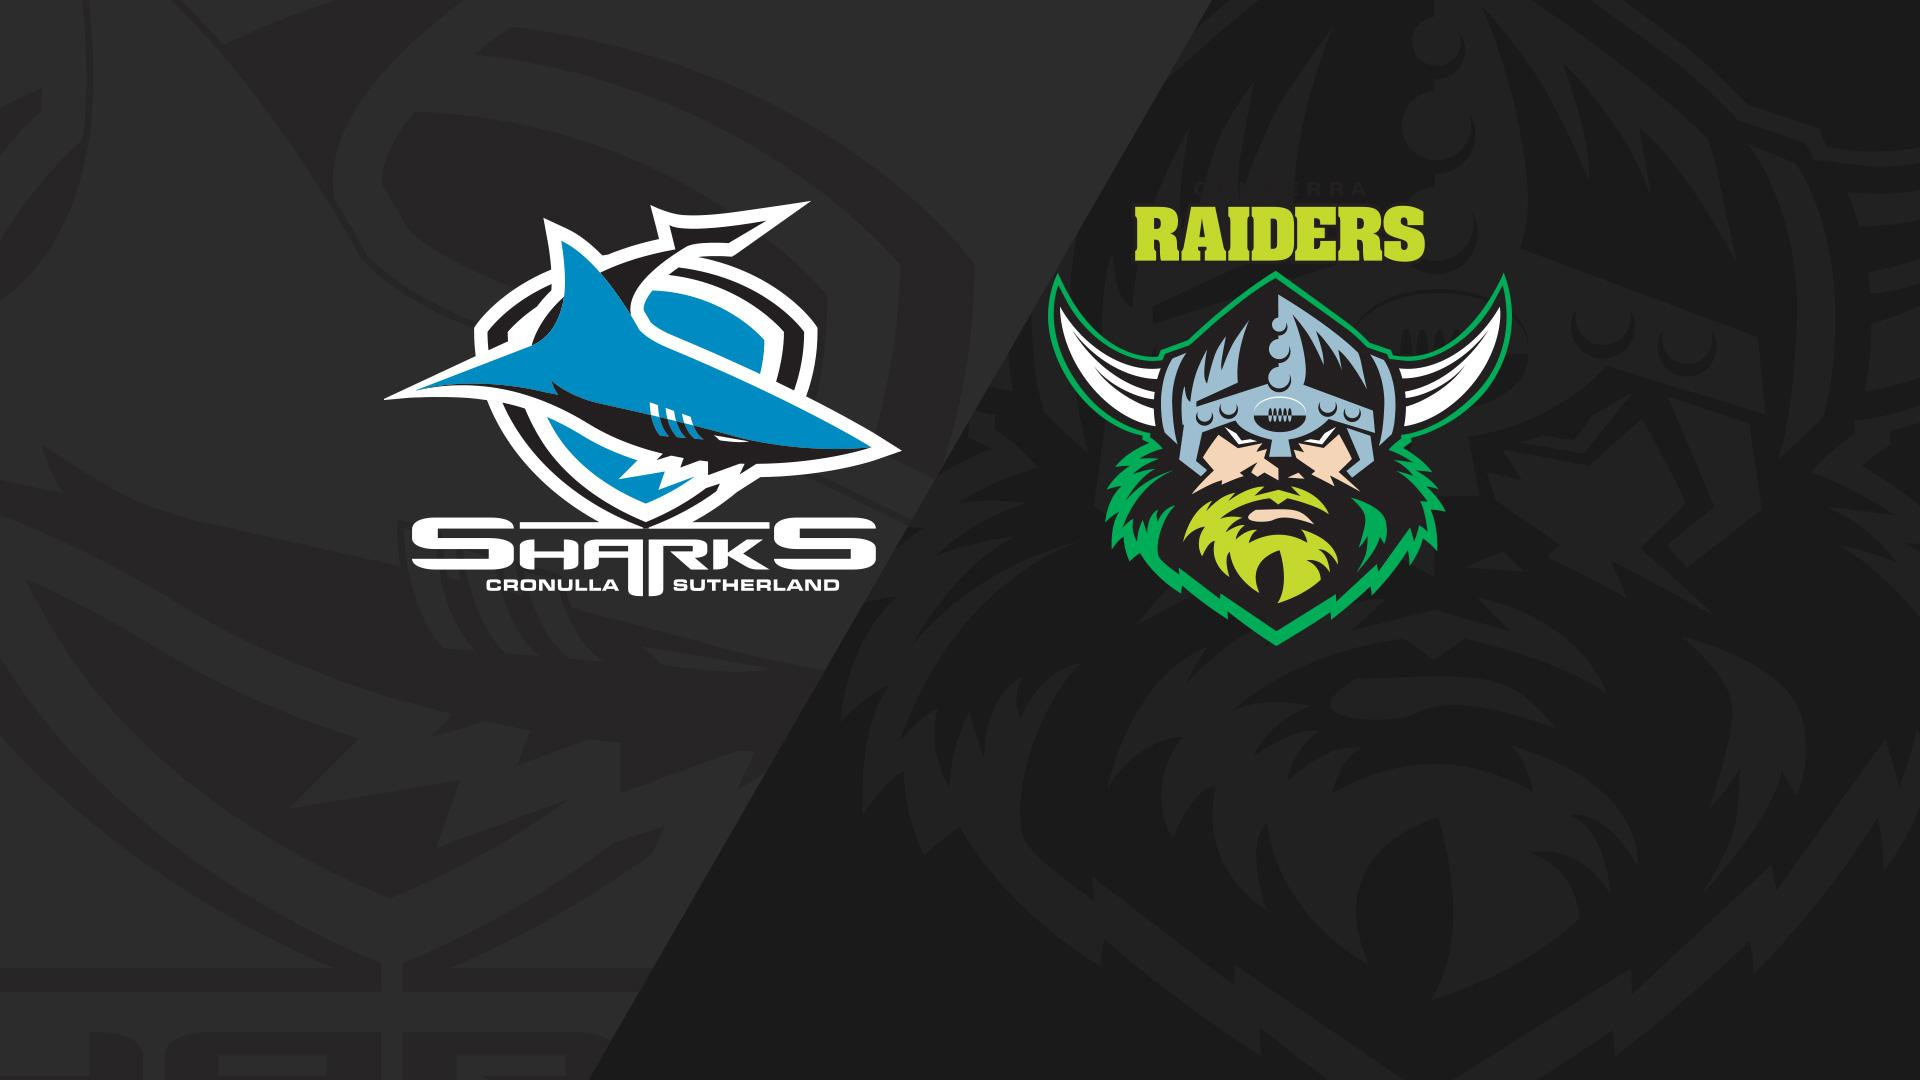 Full Match Replay: Sharks v Raiders - Round 19, 2018